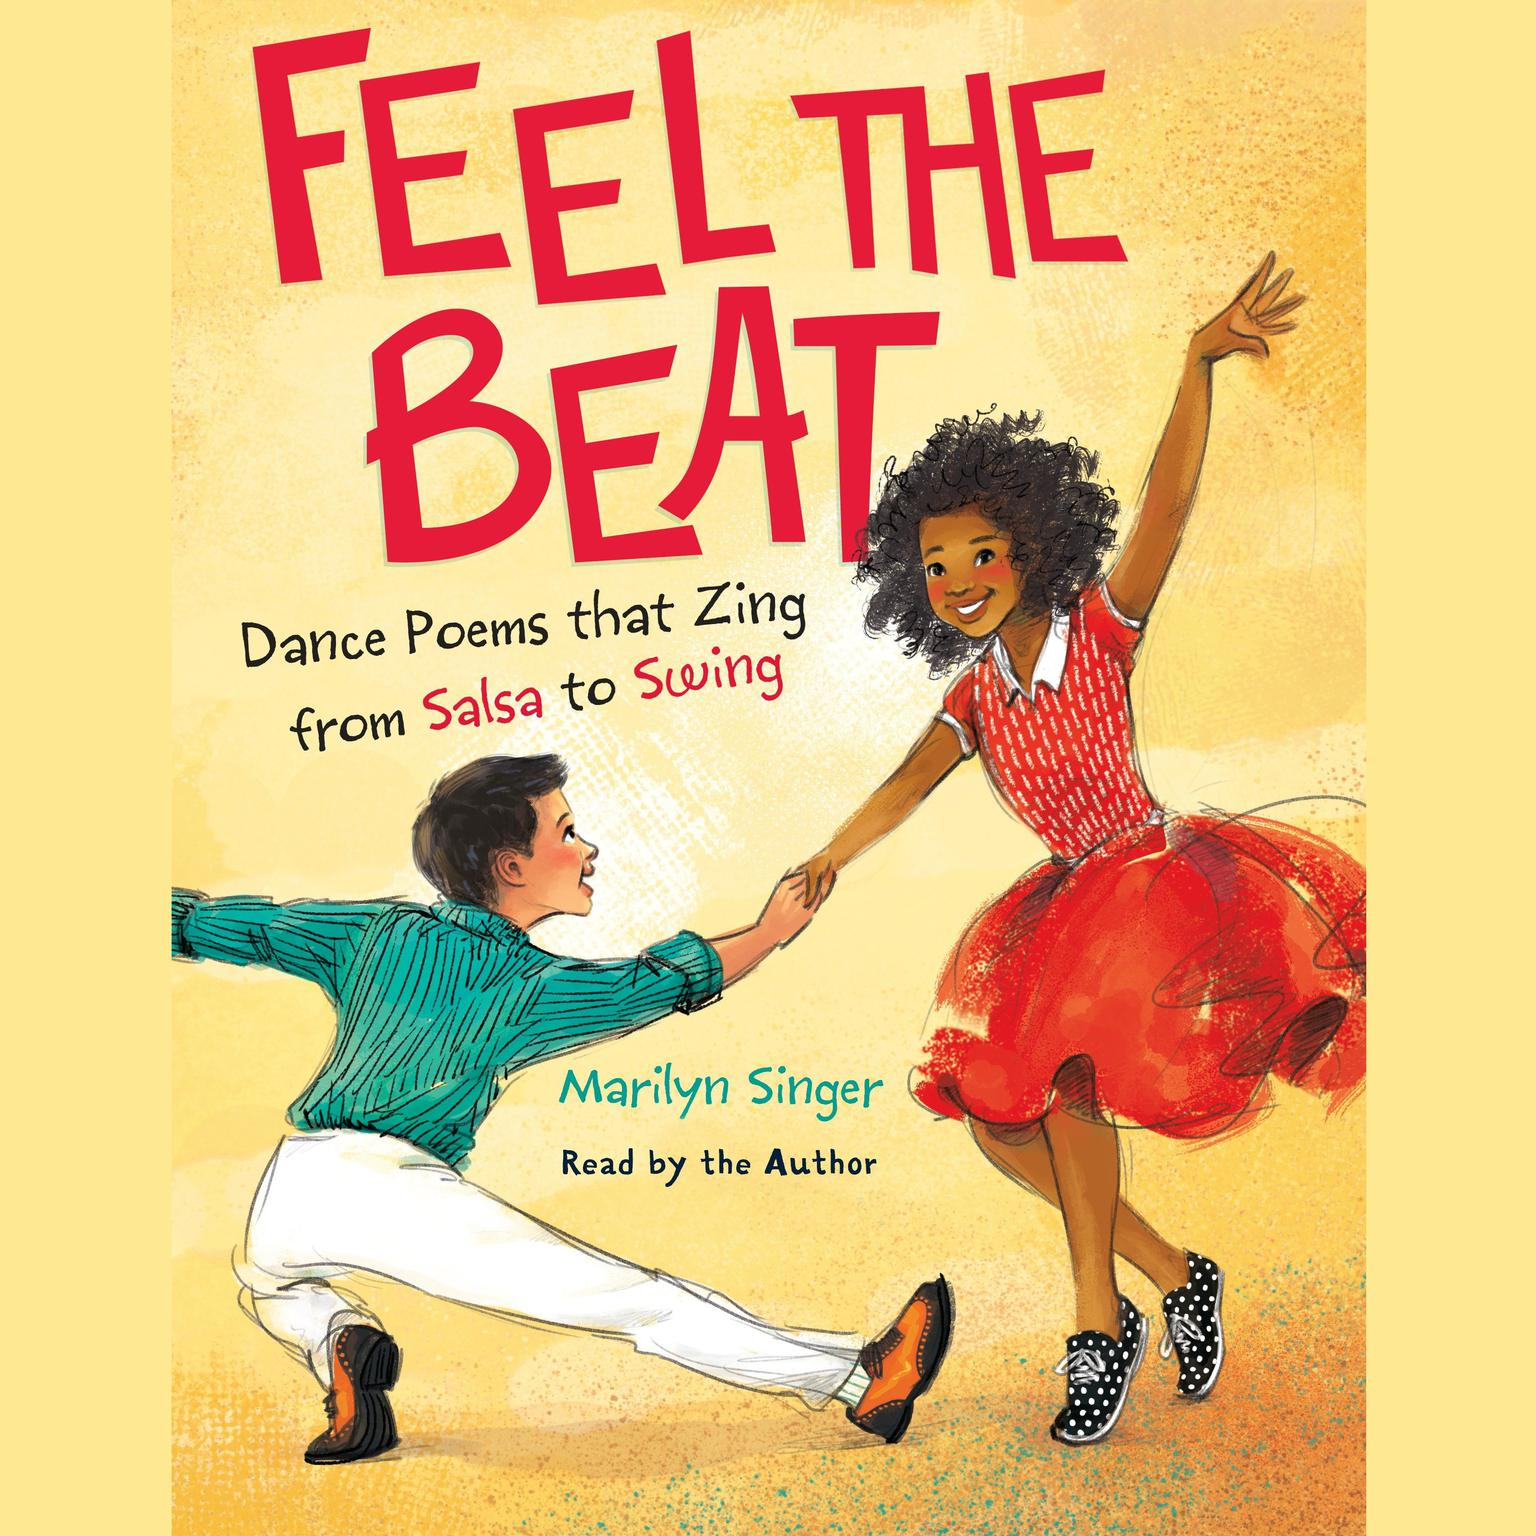 Printable Feel the Beat: Dance Poems that Zing from Salsa to Swing: Dance Poems that Zing from Salsa to Swing Audiobook Cover Art